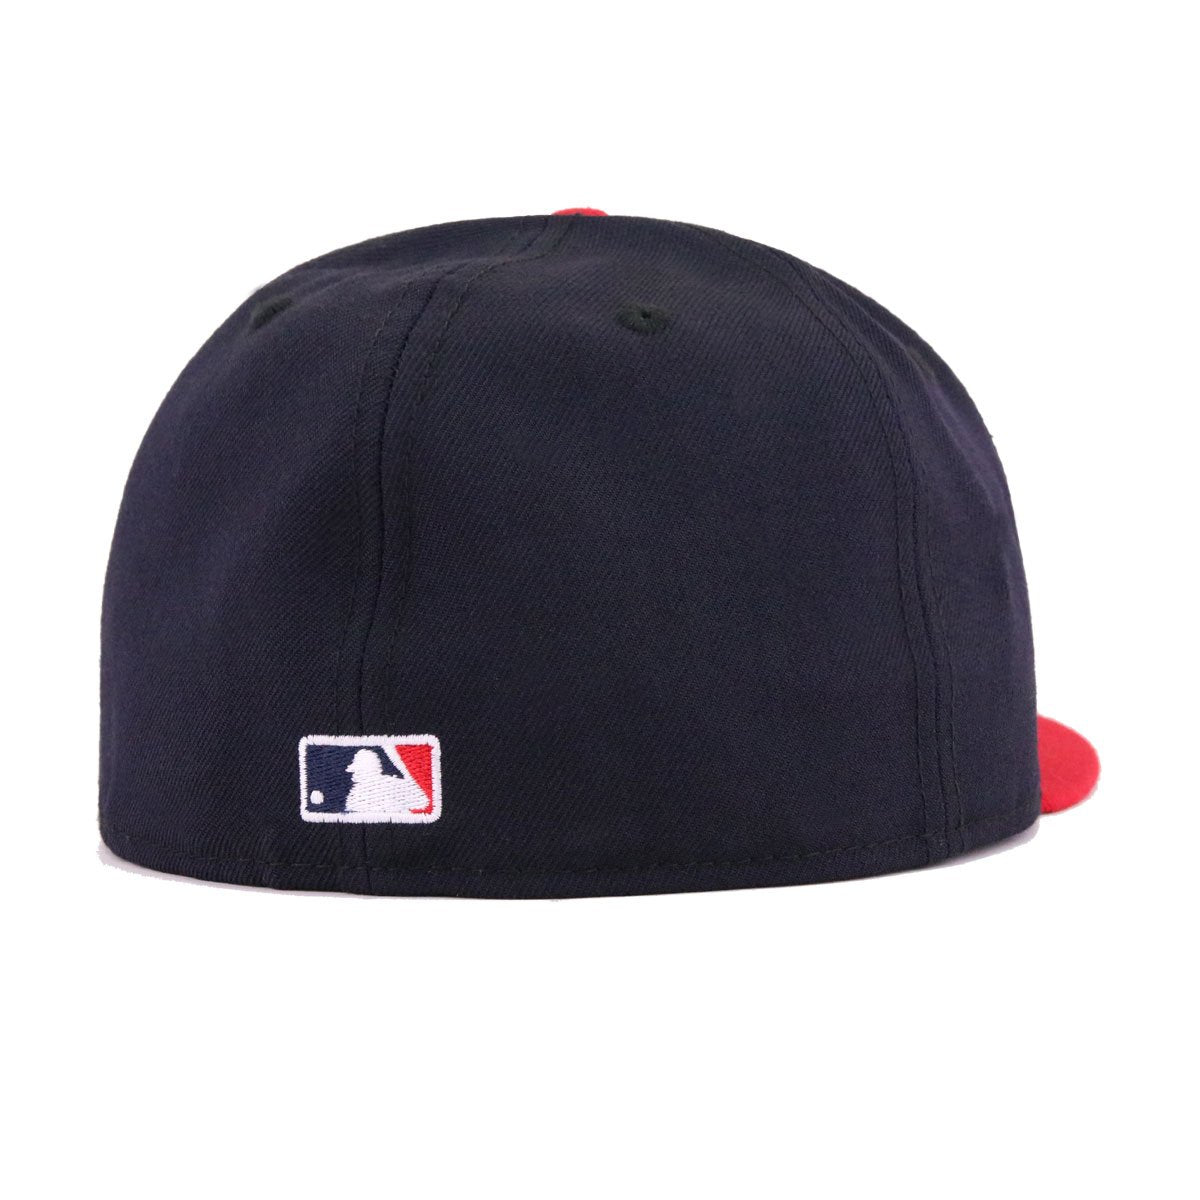 Atlanta Braves Navy Scarlet Cooperstown New Era 59Fifty Fitted